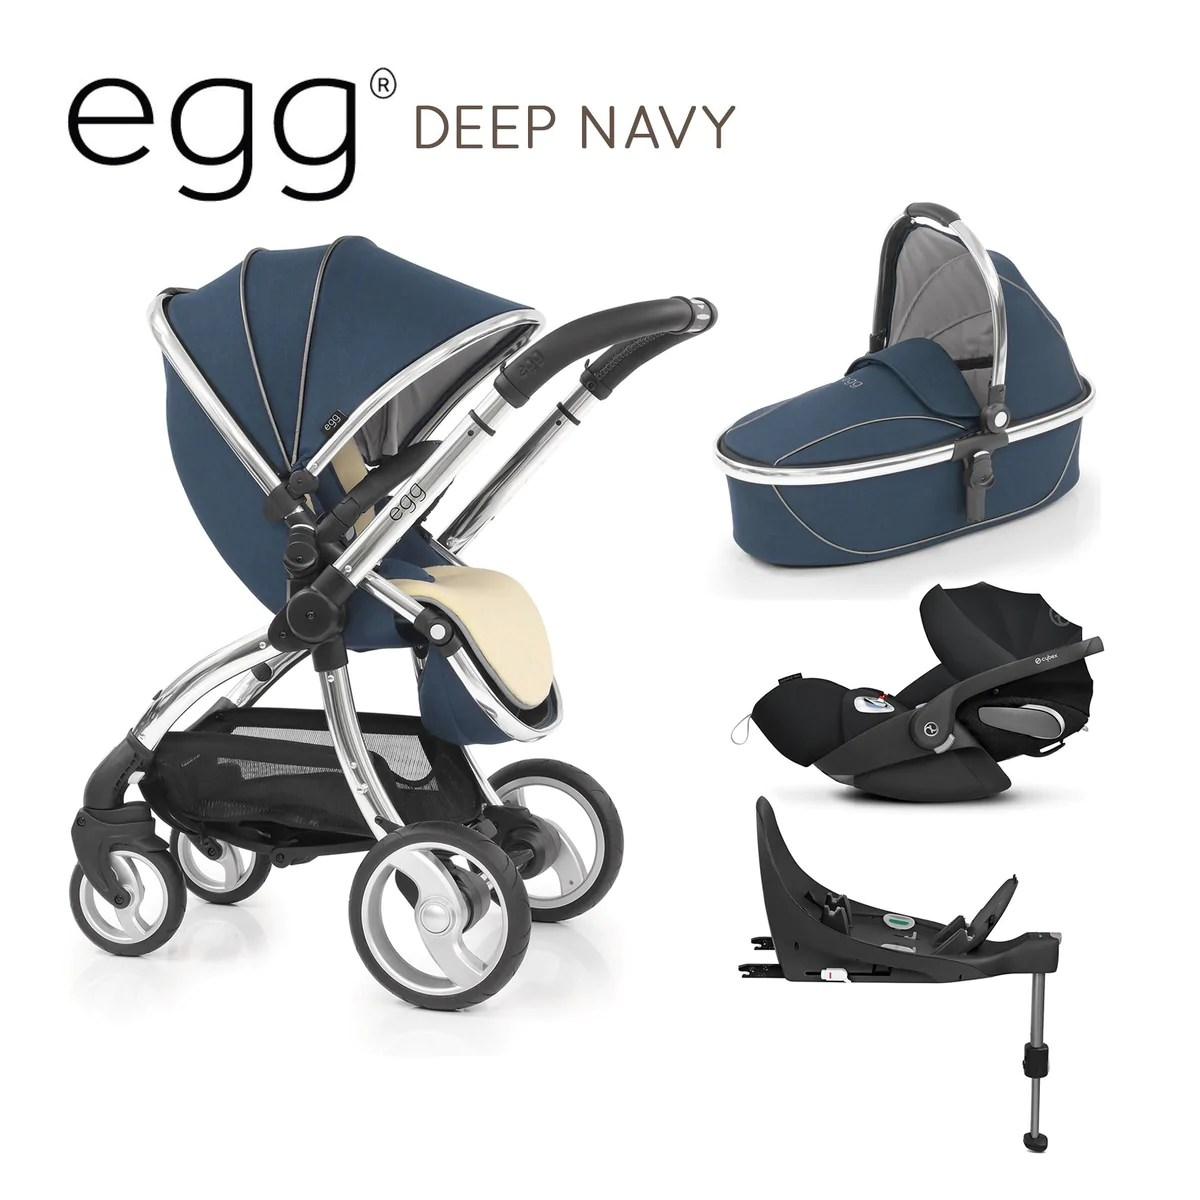 Egg Pram Replacement Wheels Egg Stroller Deep Navy With Cybex Cloud Z And Base